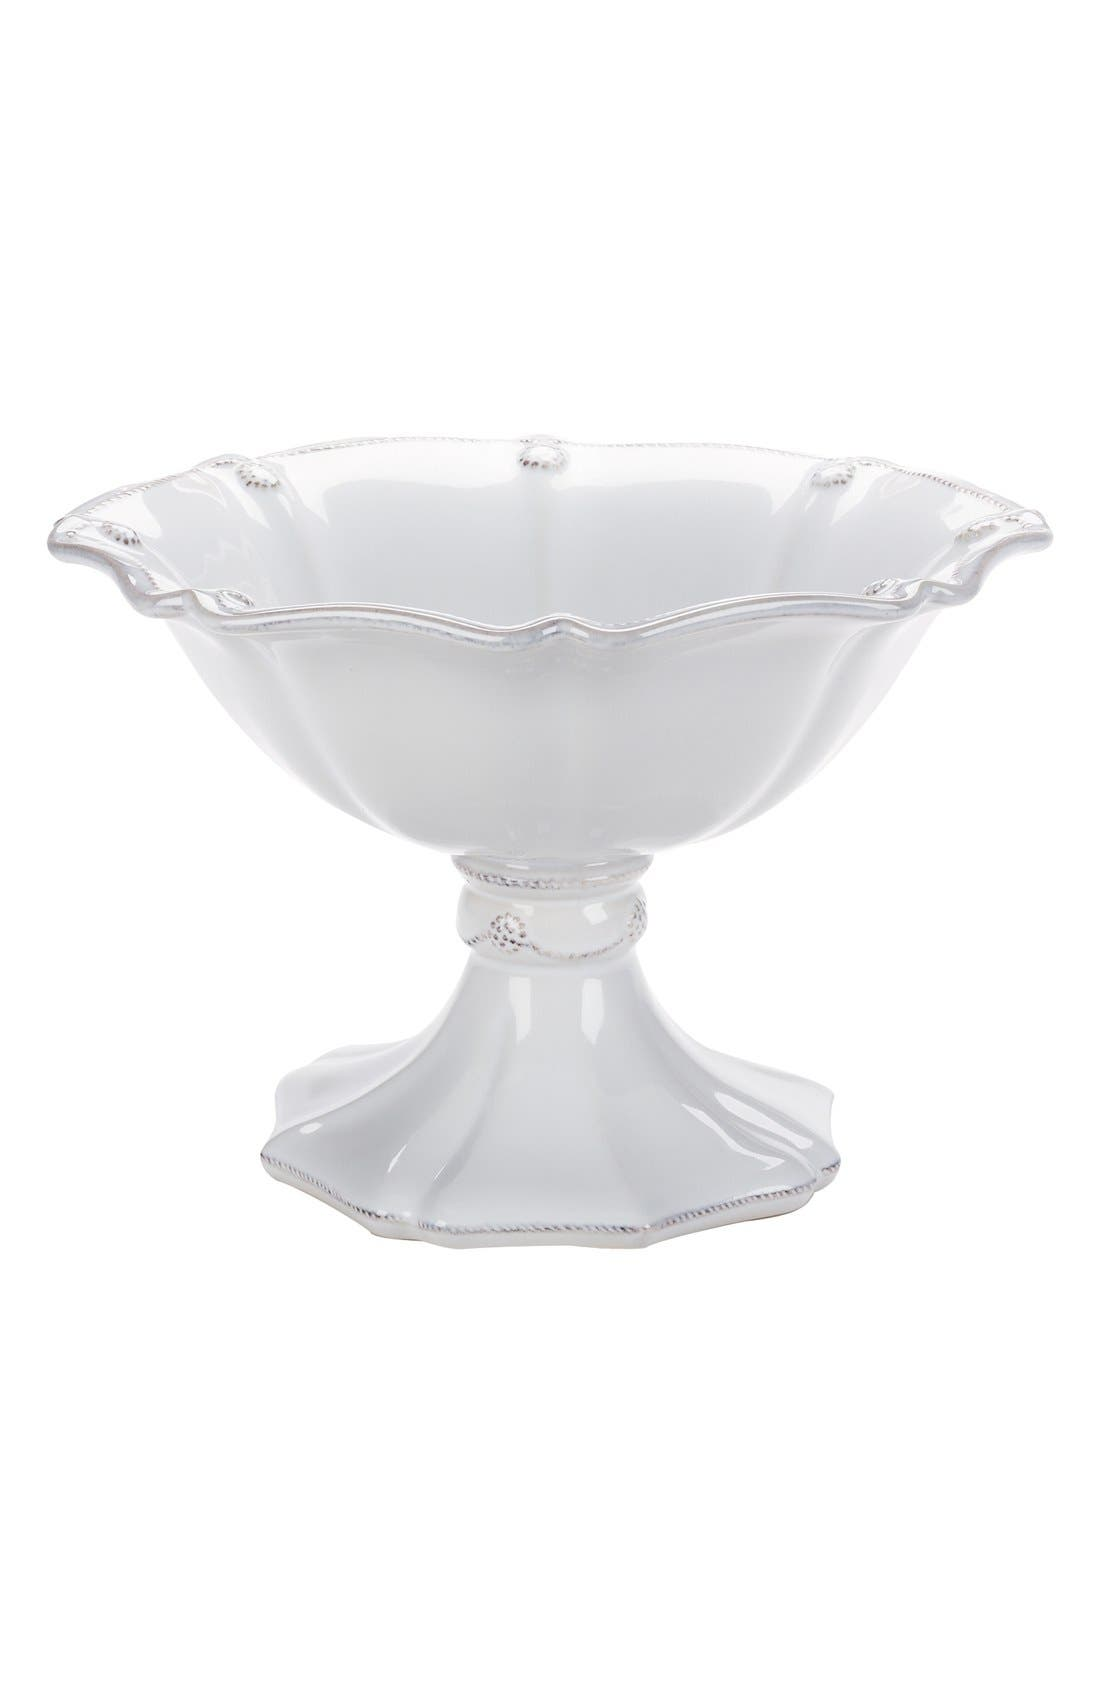 Juliska'Berry and Thread' Ceramic Footed Round Compote